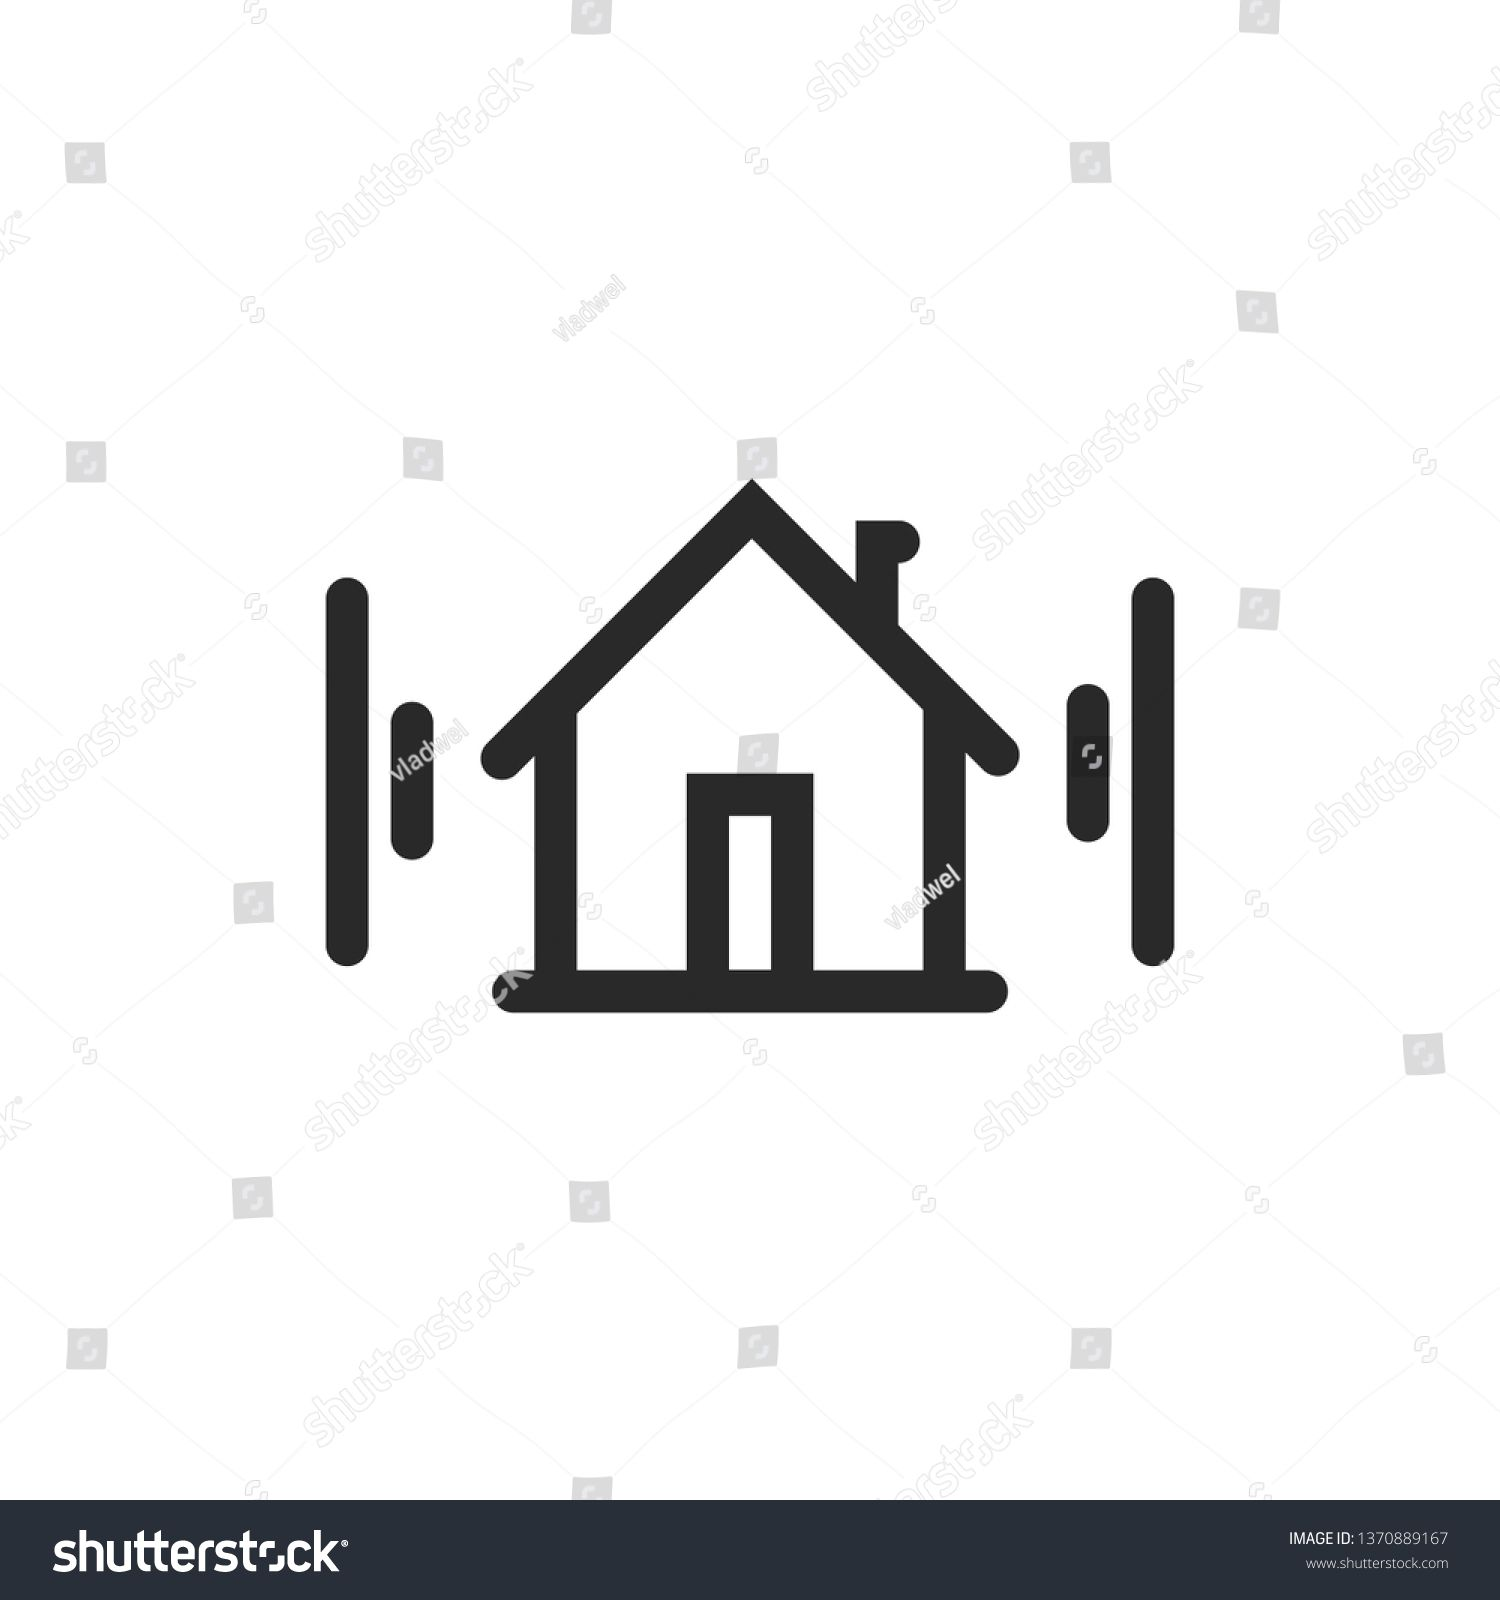 Home icon vector symbol, line outline art house pictogram